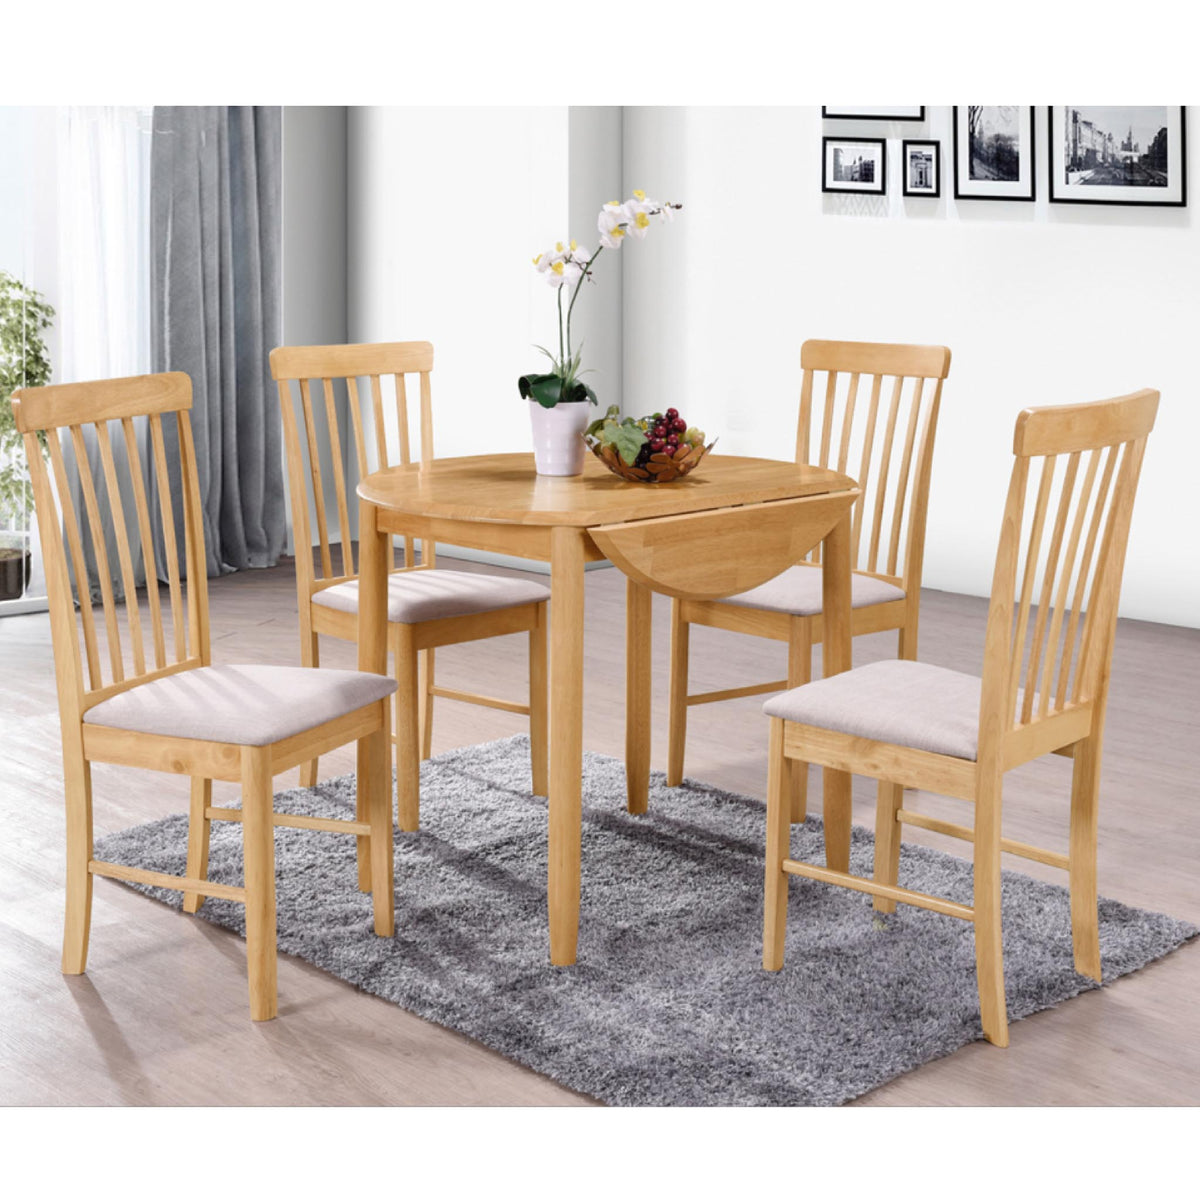 Cologne Round Drop Leaf Dining Table by Roseland Furniture